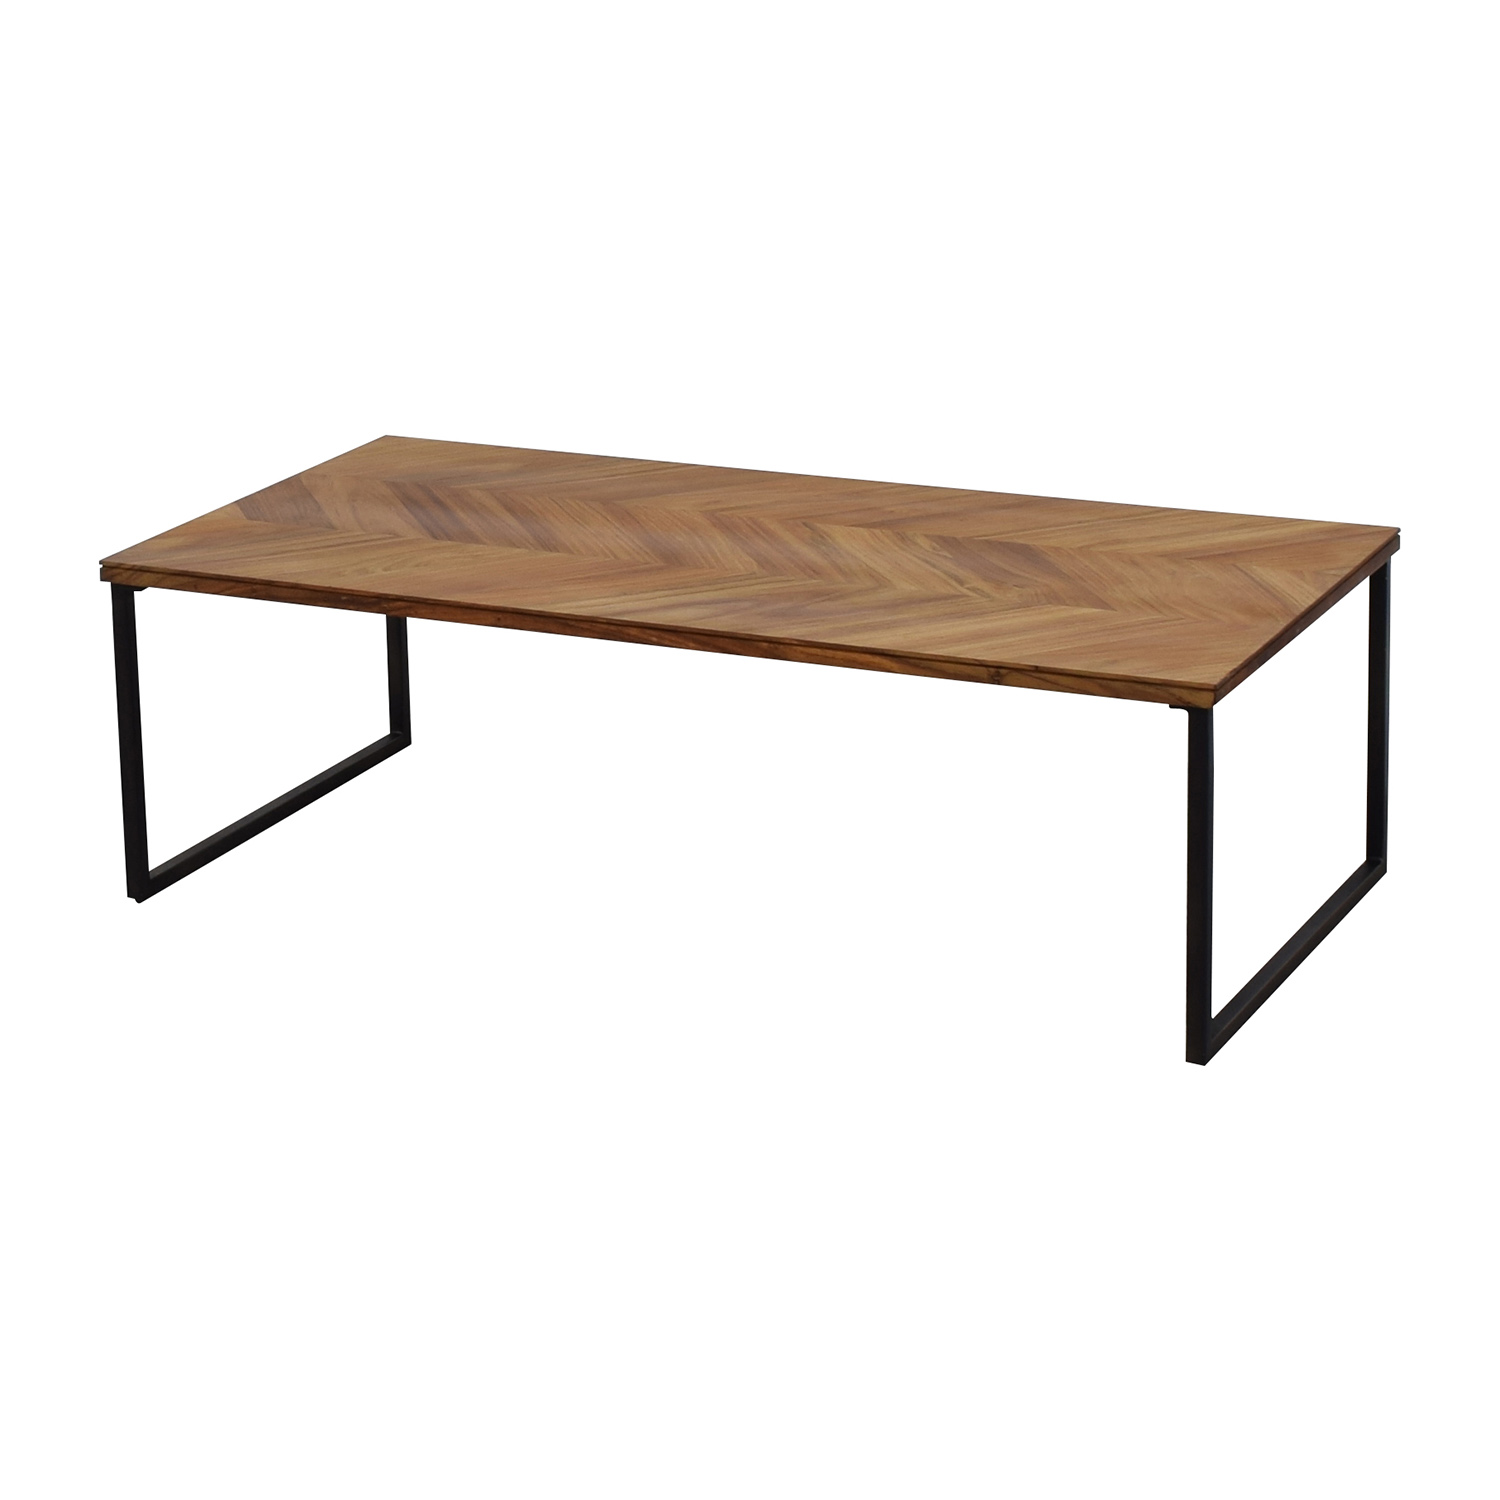 34 Off Cb2 Cb2 Chevron 48 Coffee Table Tables